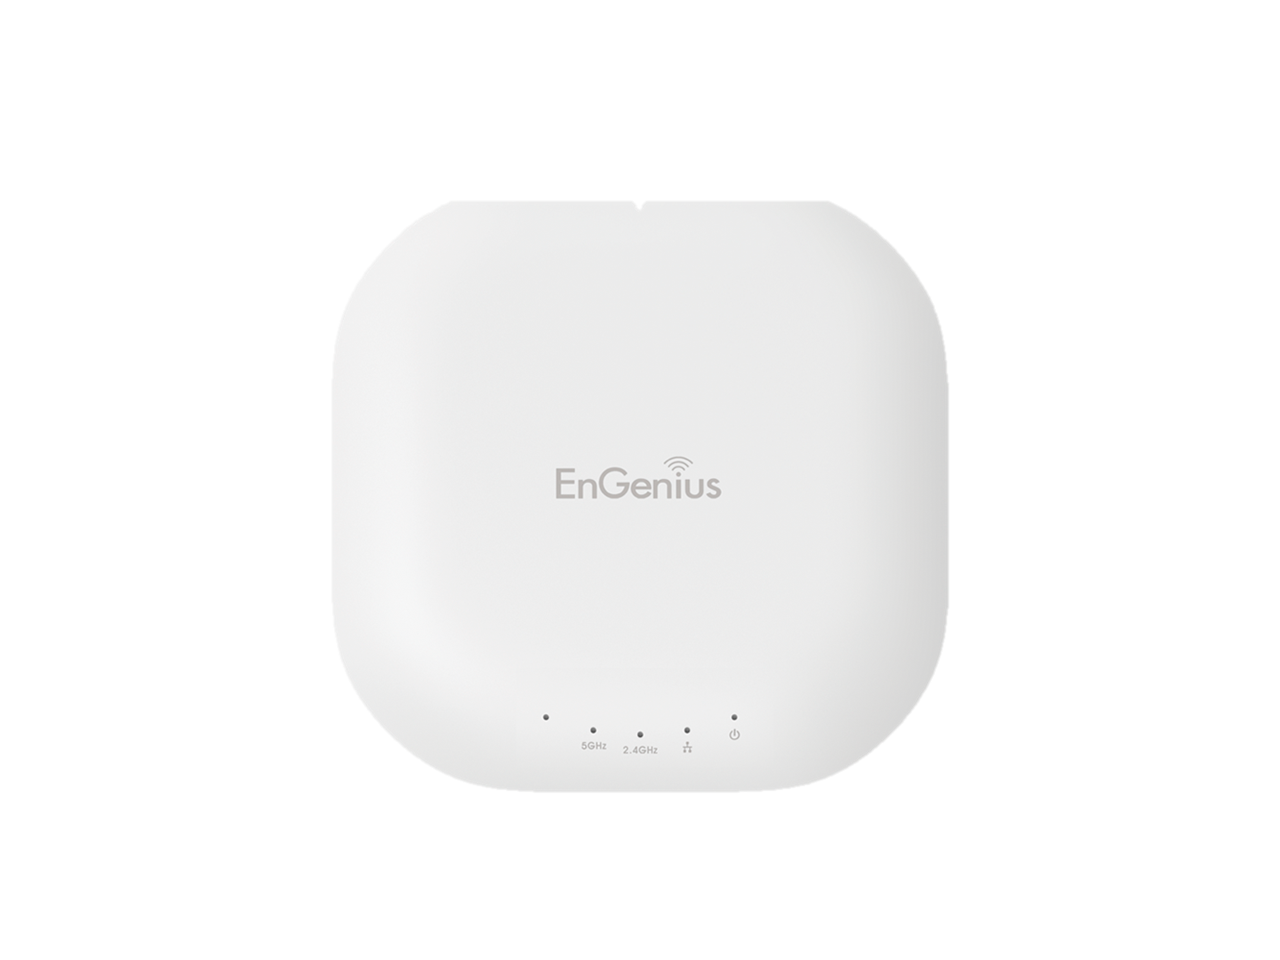 ENGENİUS EWS310AP - Tavan Tipi Yönetilebilir Access Point